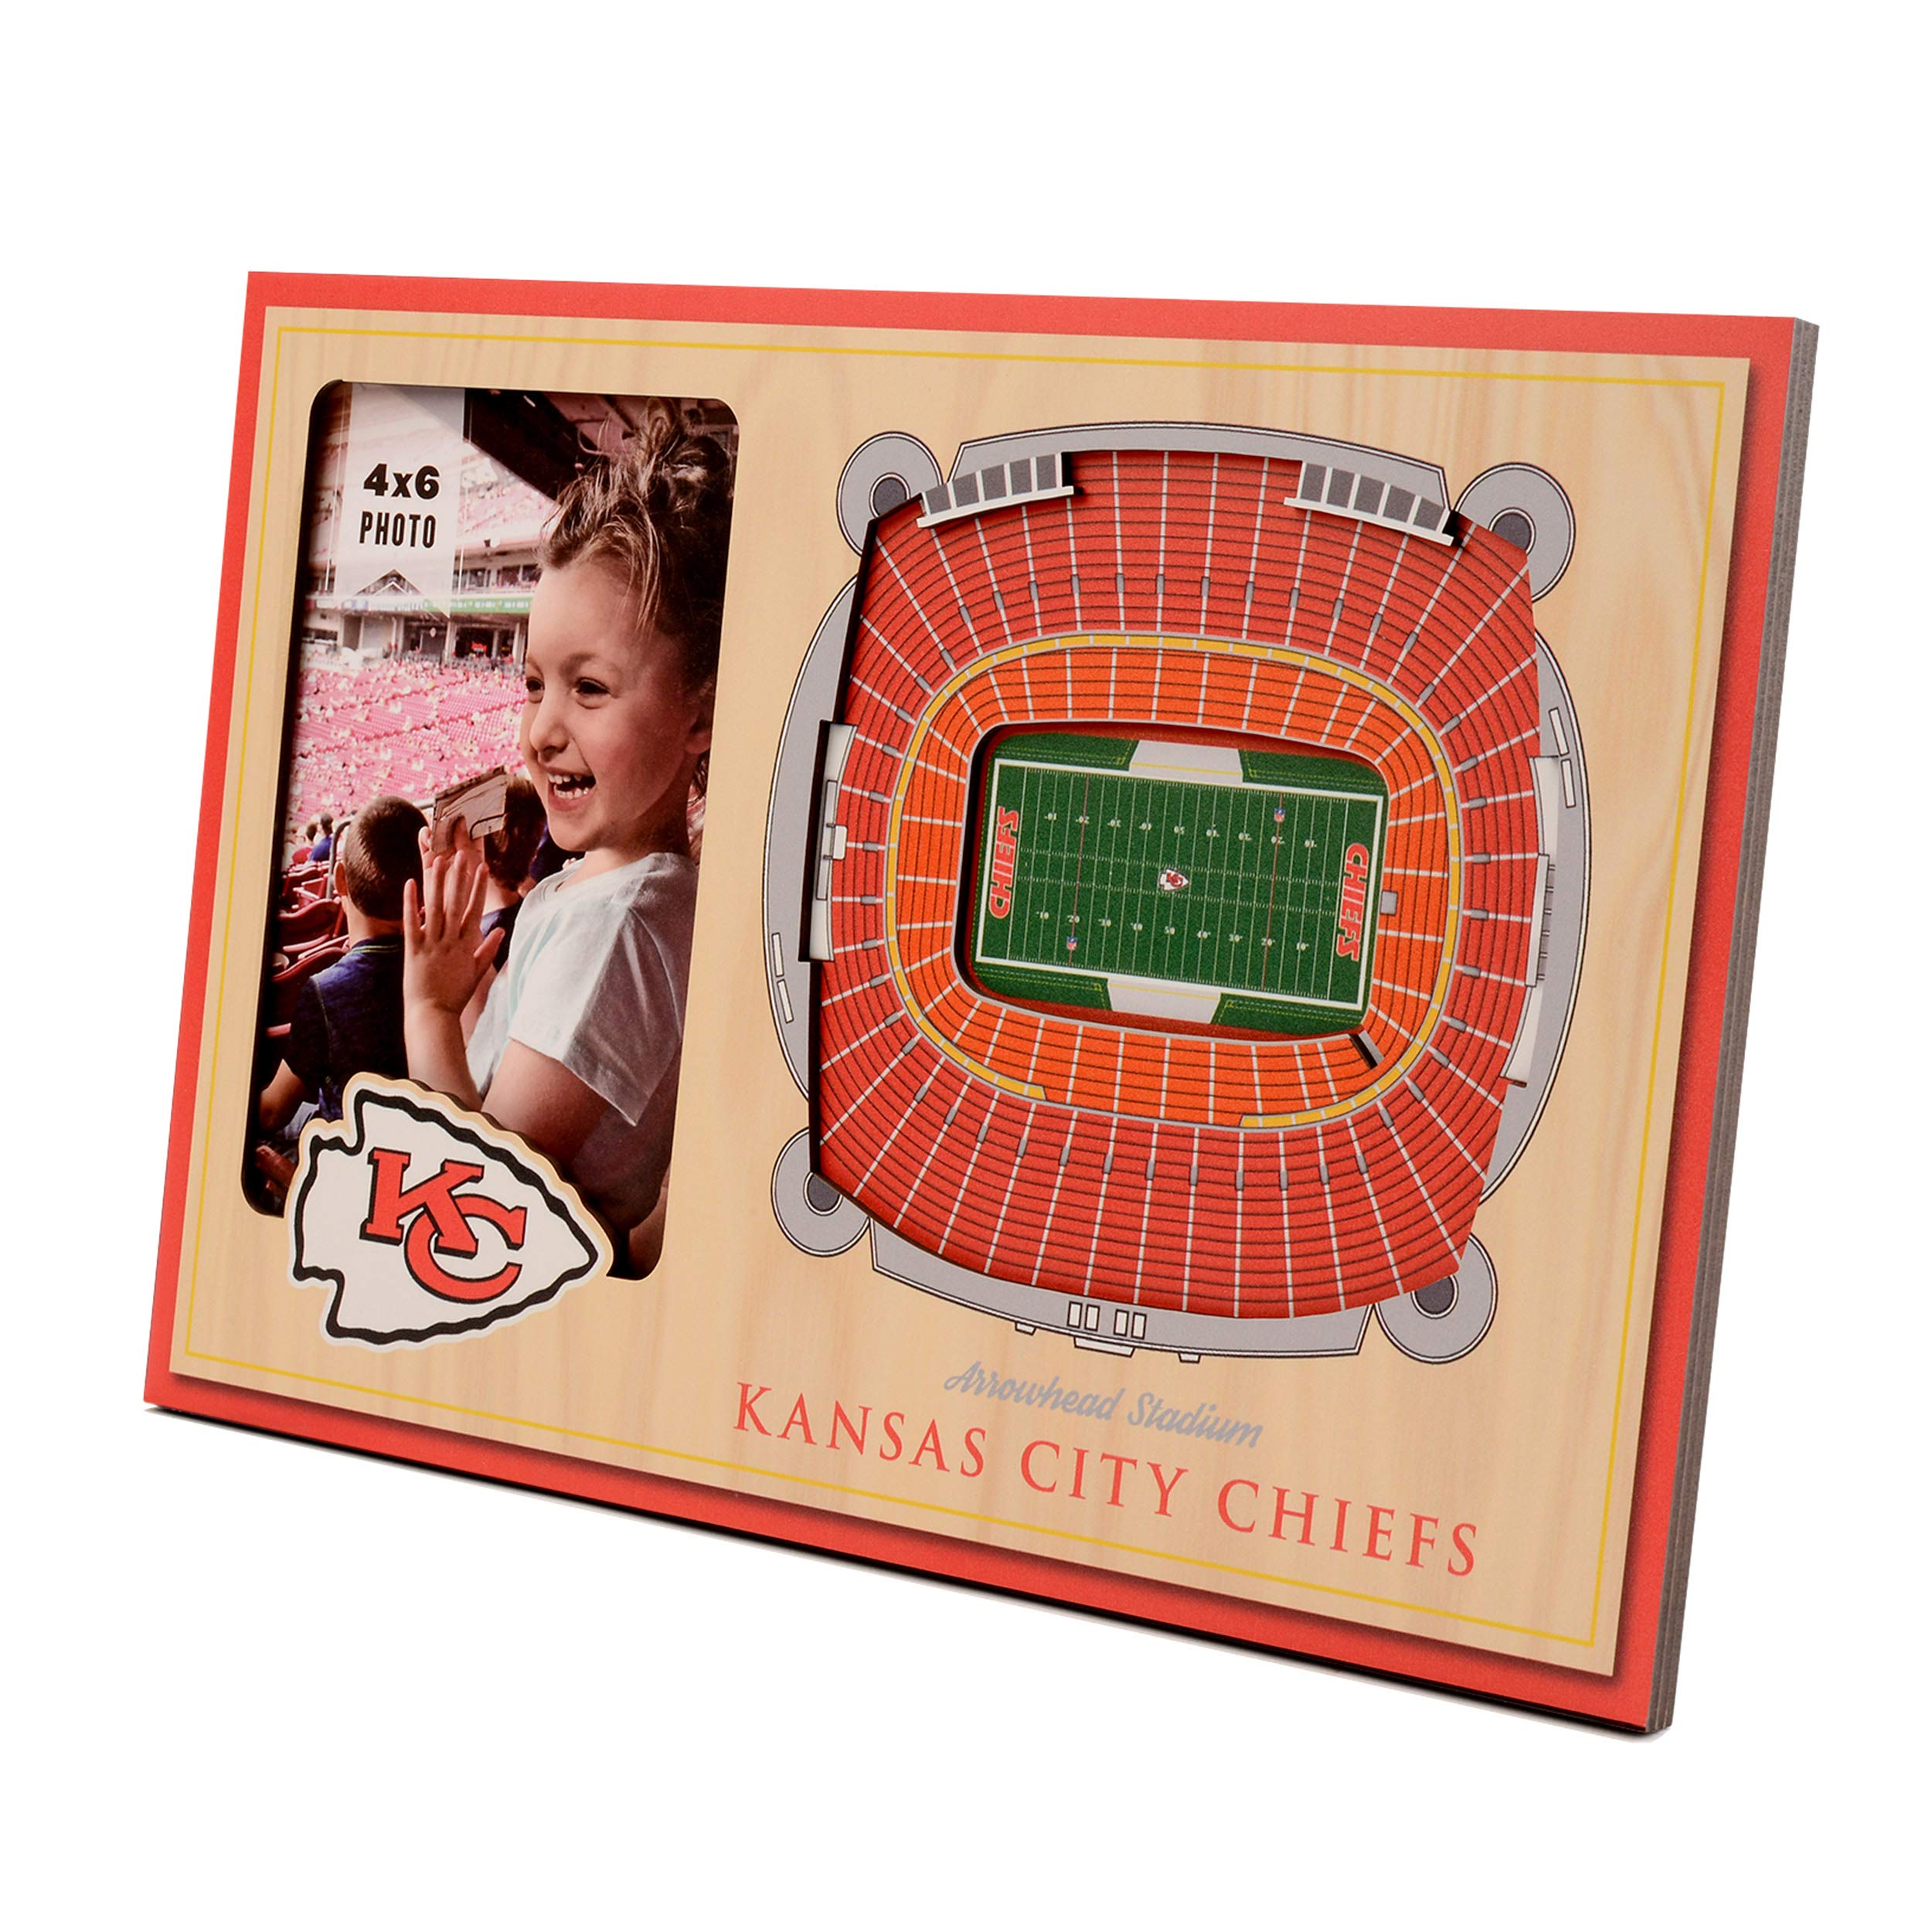 NFL Kansas City Chiefs 3D StadiumViews Picture Frame by YouTheFan